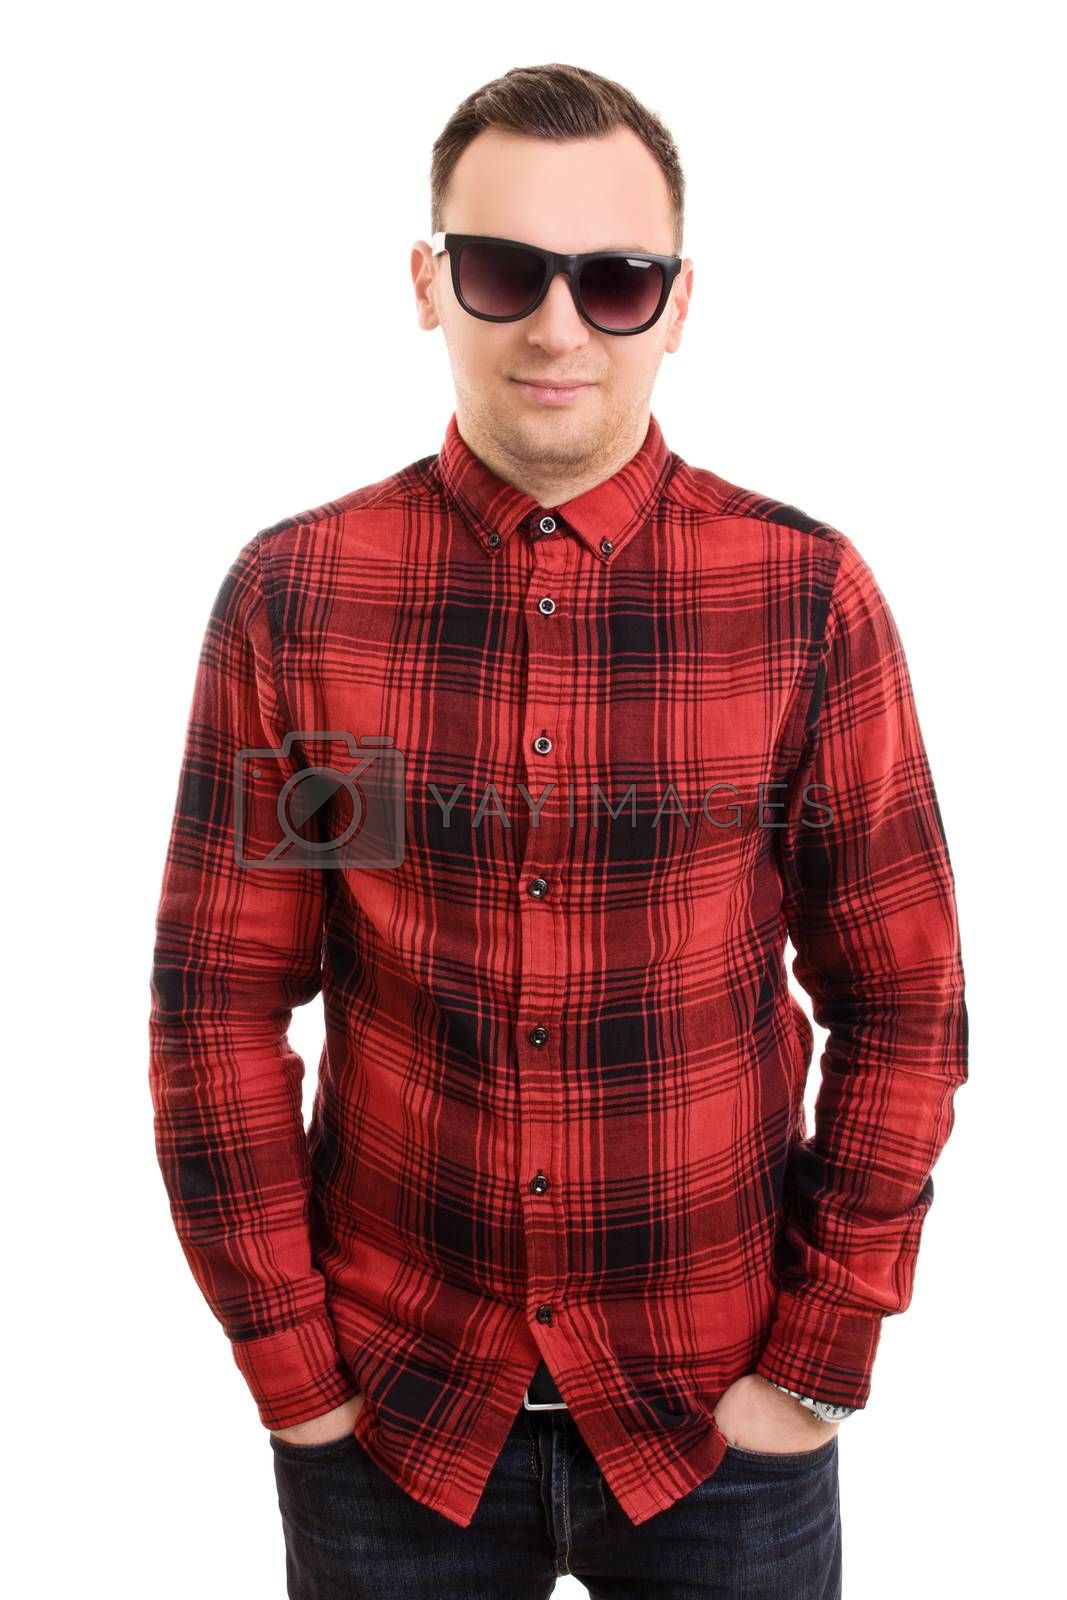 Modern and casual in style. Fashion portrait of stylish handsome young man in plaid shirt and sunglasses, posing with hands in pockets, isolated on white background.